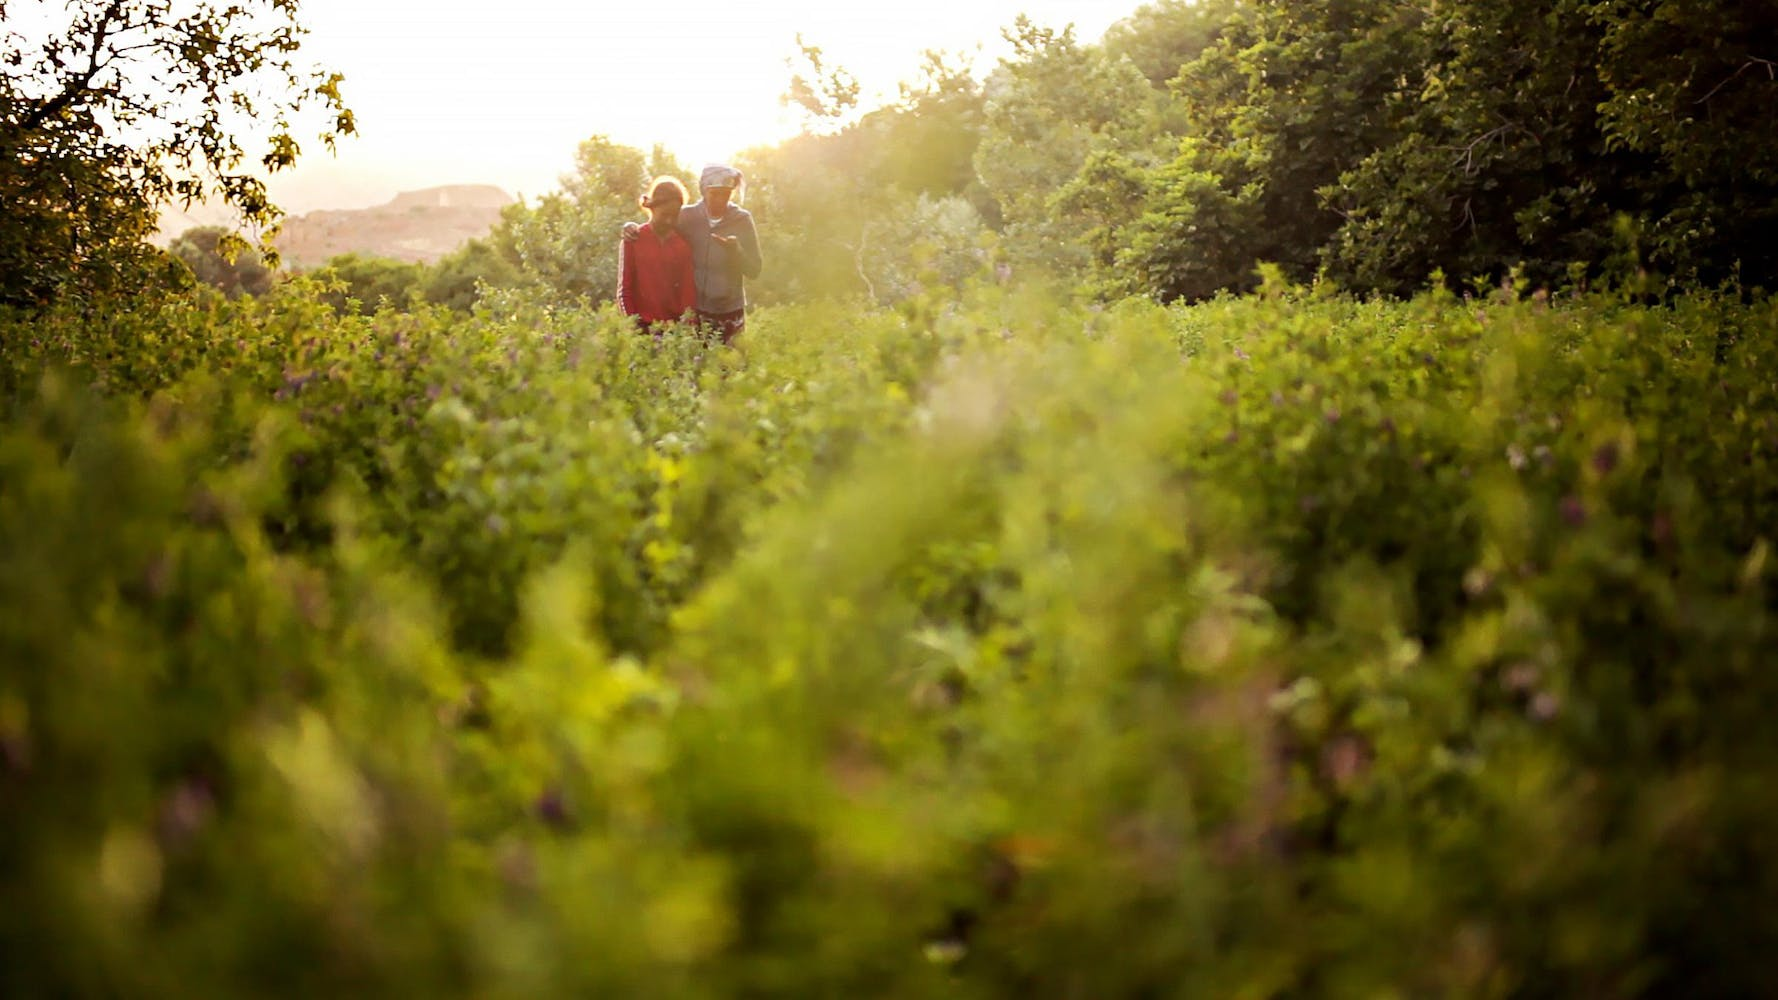 Two people walk together through a field of green plants and trees.